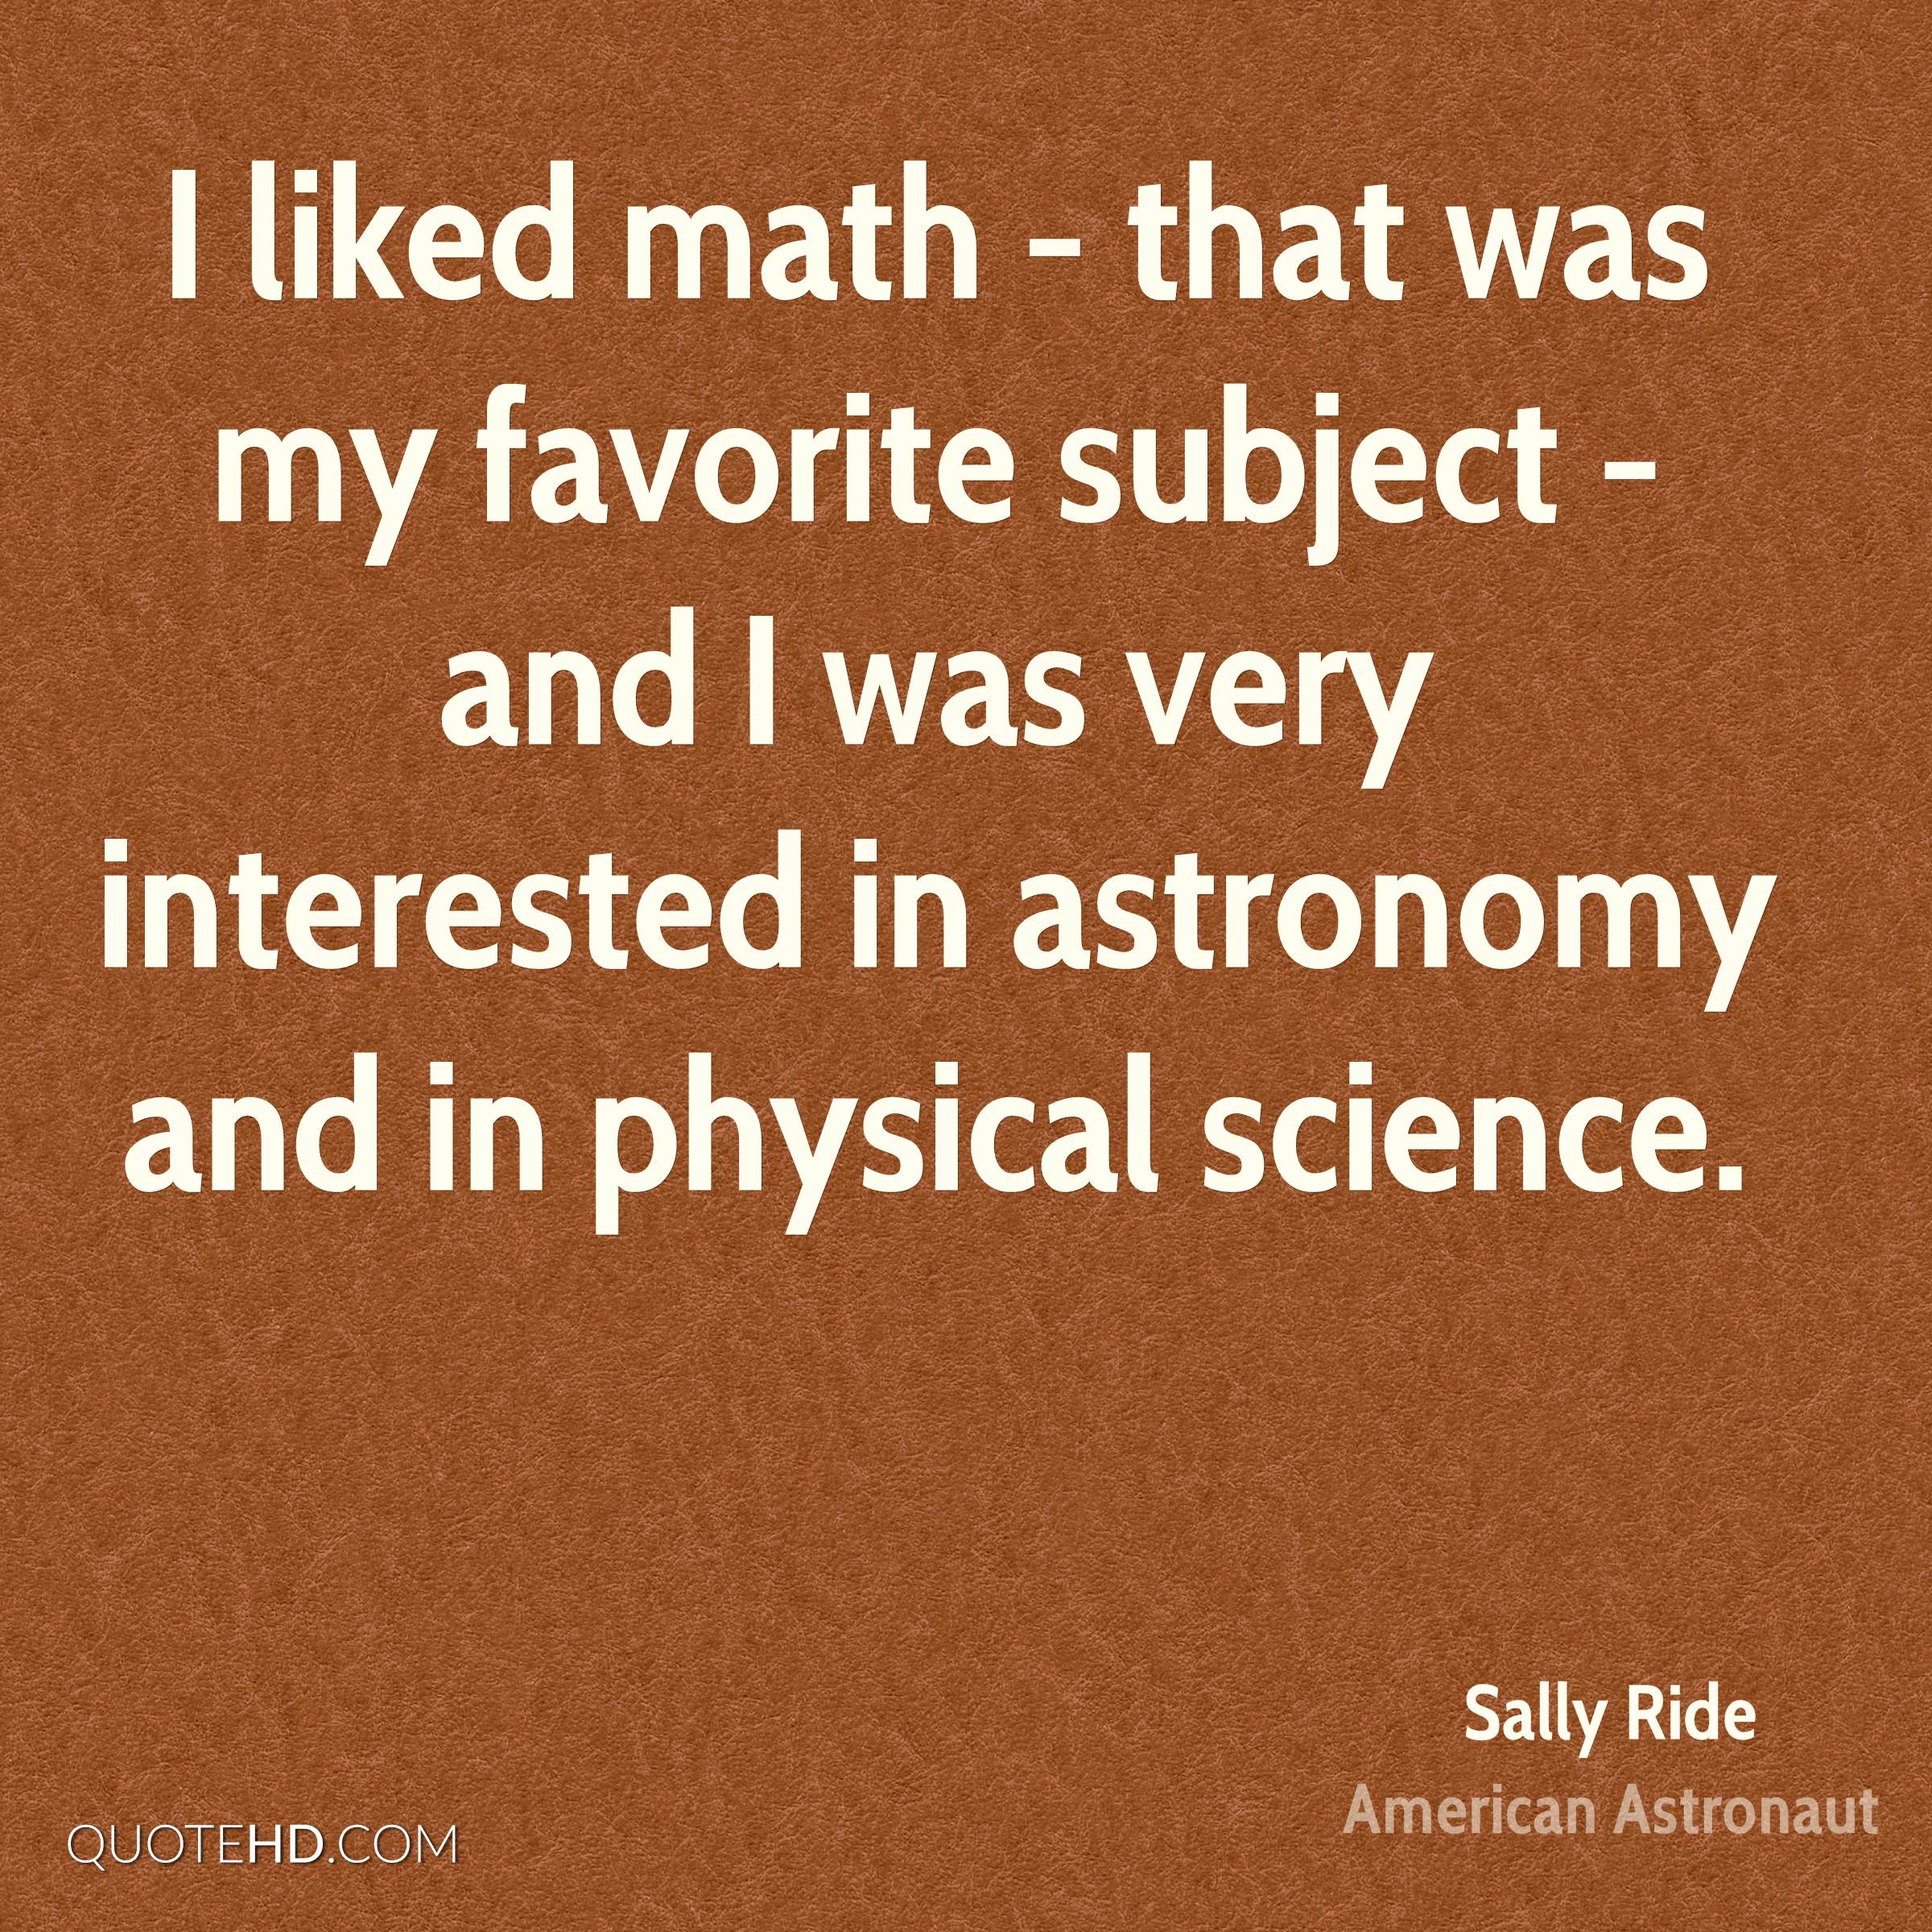 I liked math - that was my favorite subject - and I was very interested in astronomy and in physical science.